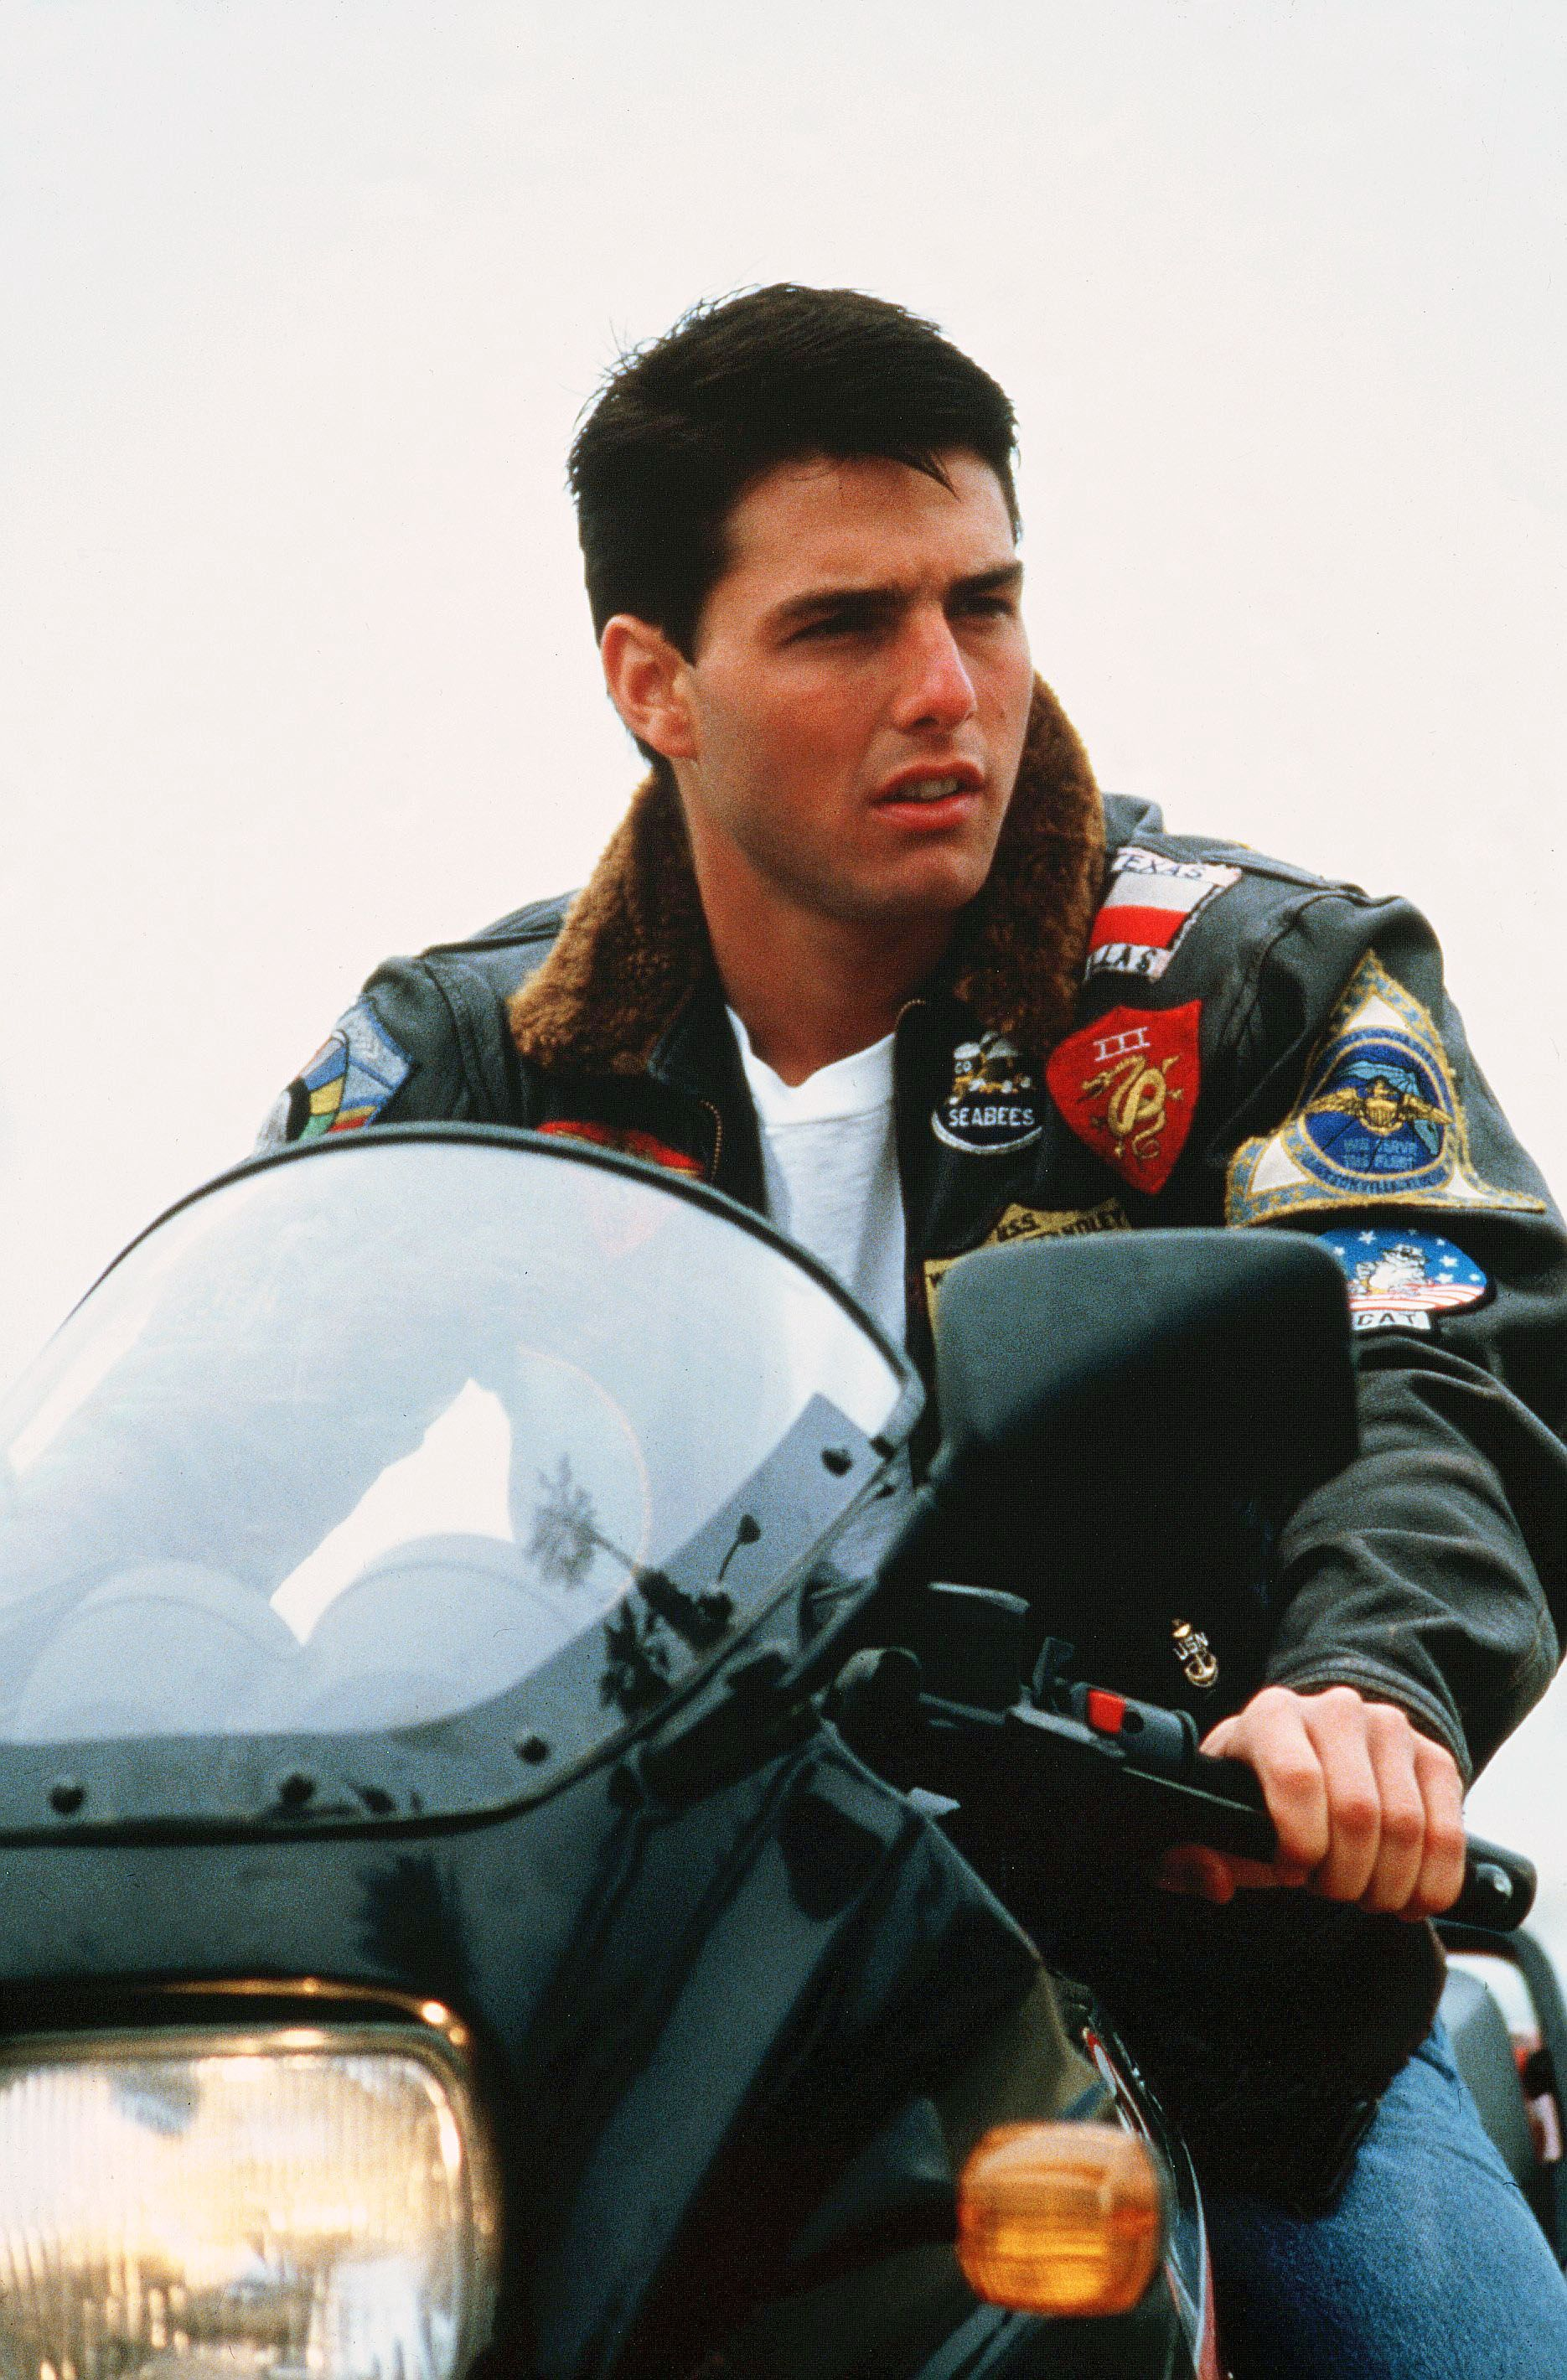 Pin on Top Gun